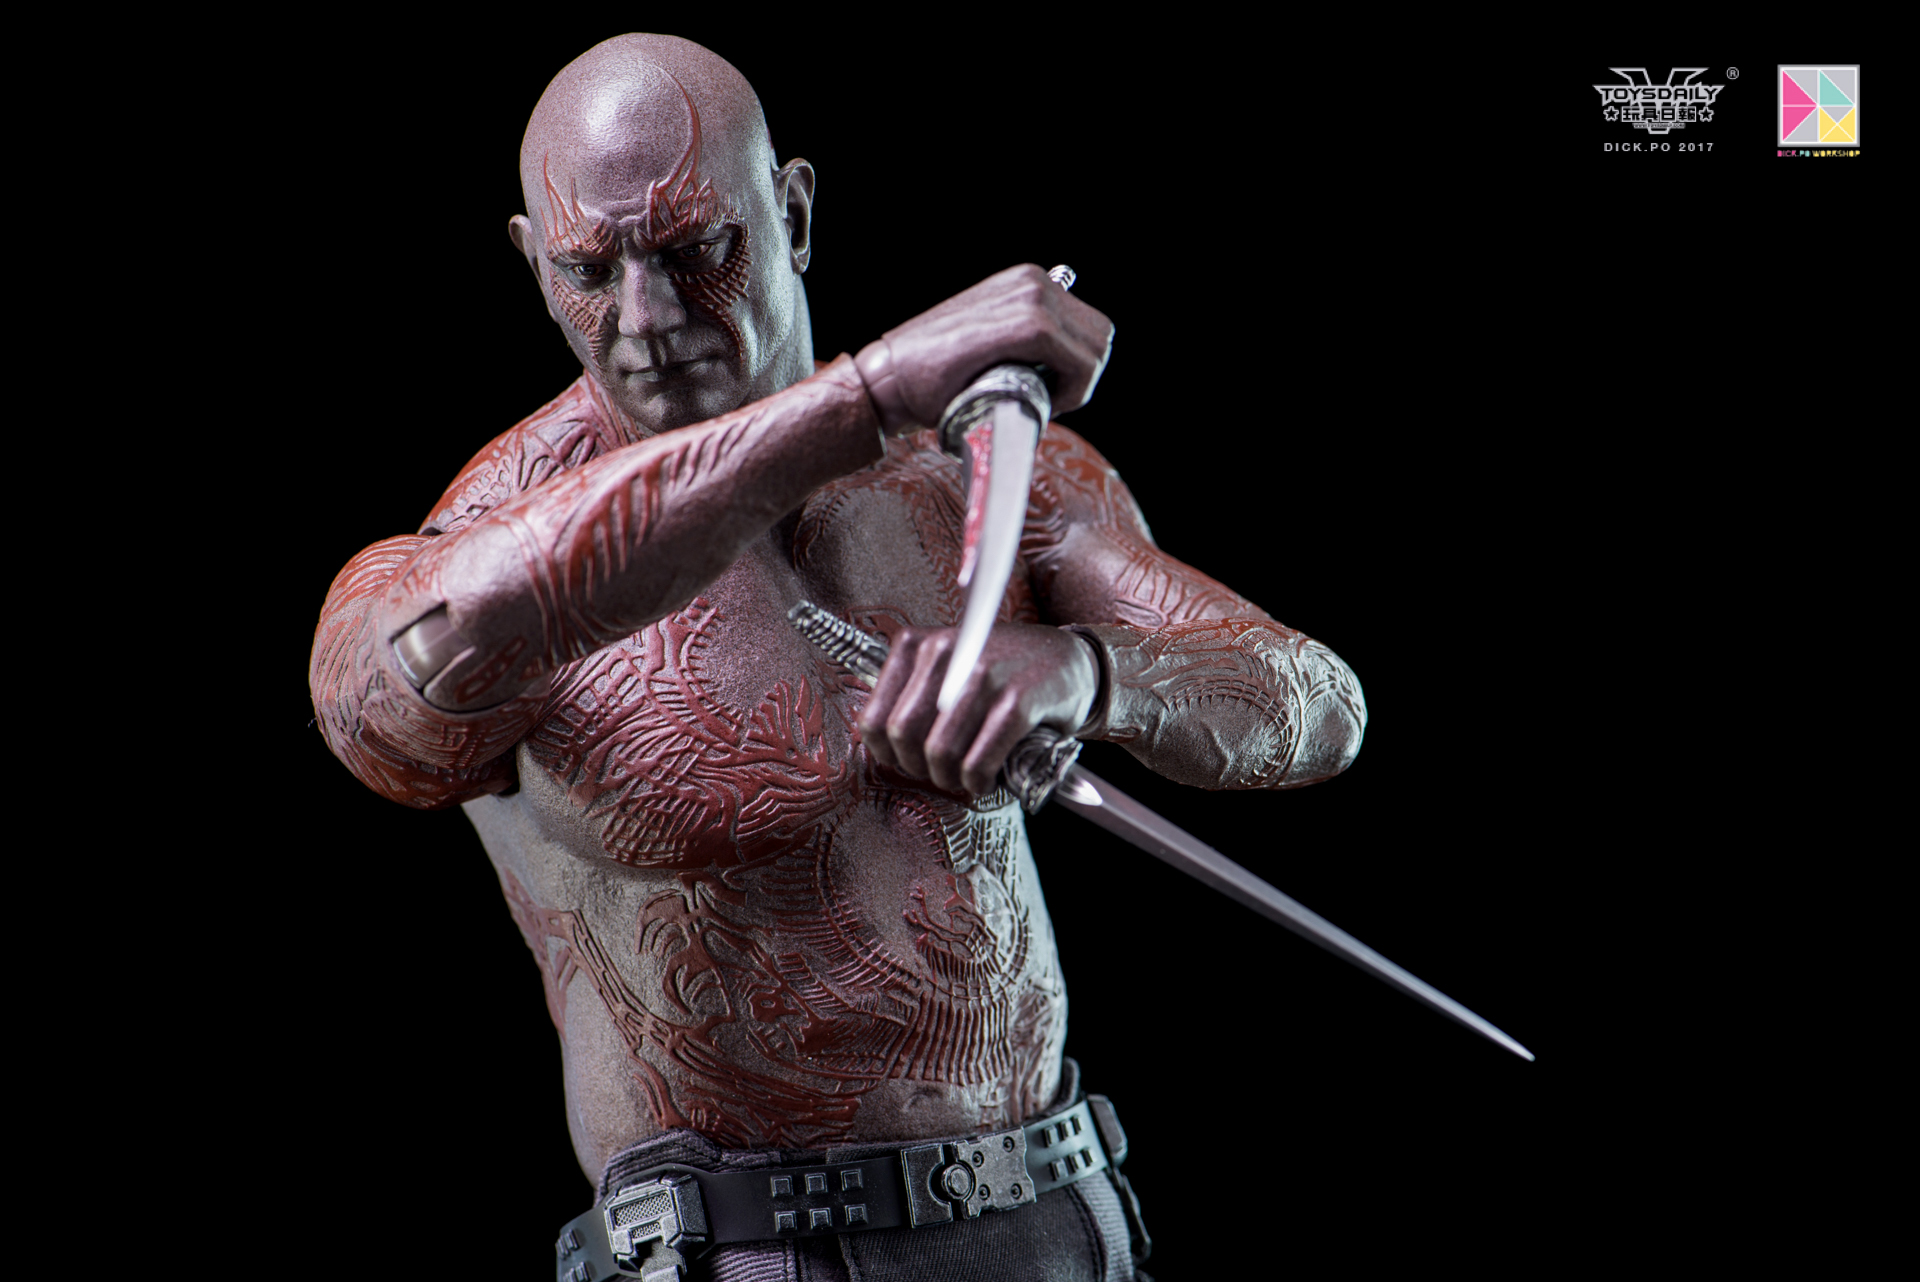 toysdaily_dick.po_Hottoys_DARX-28.jpg